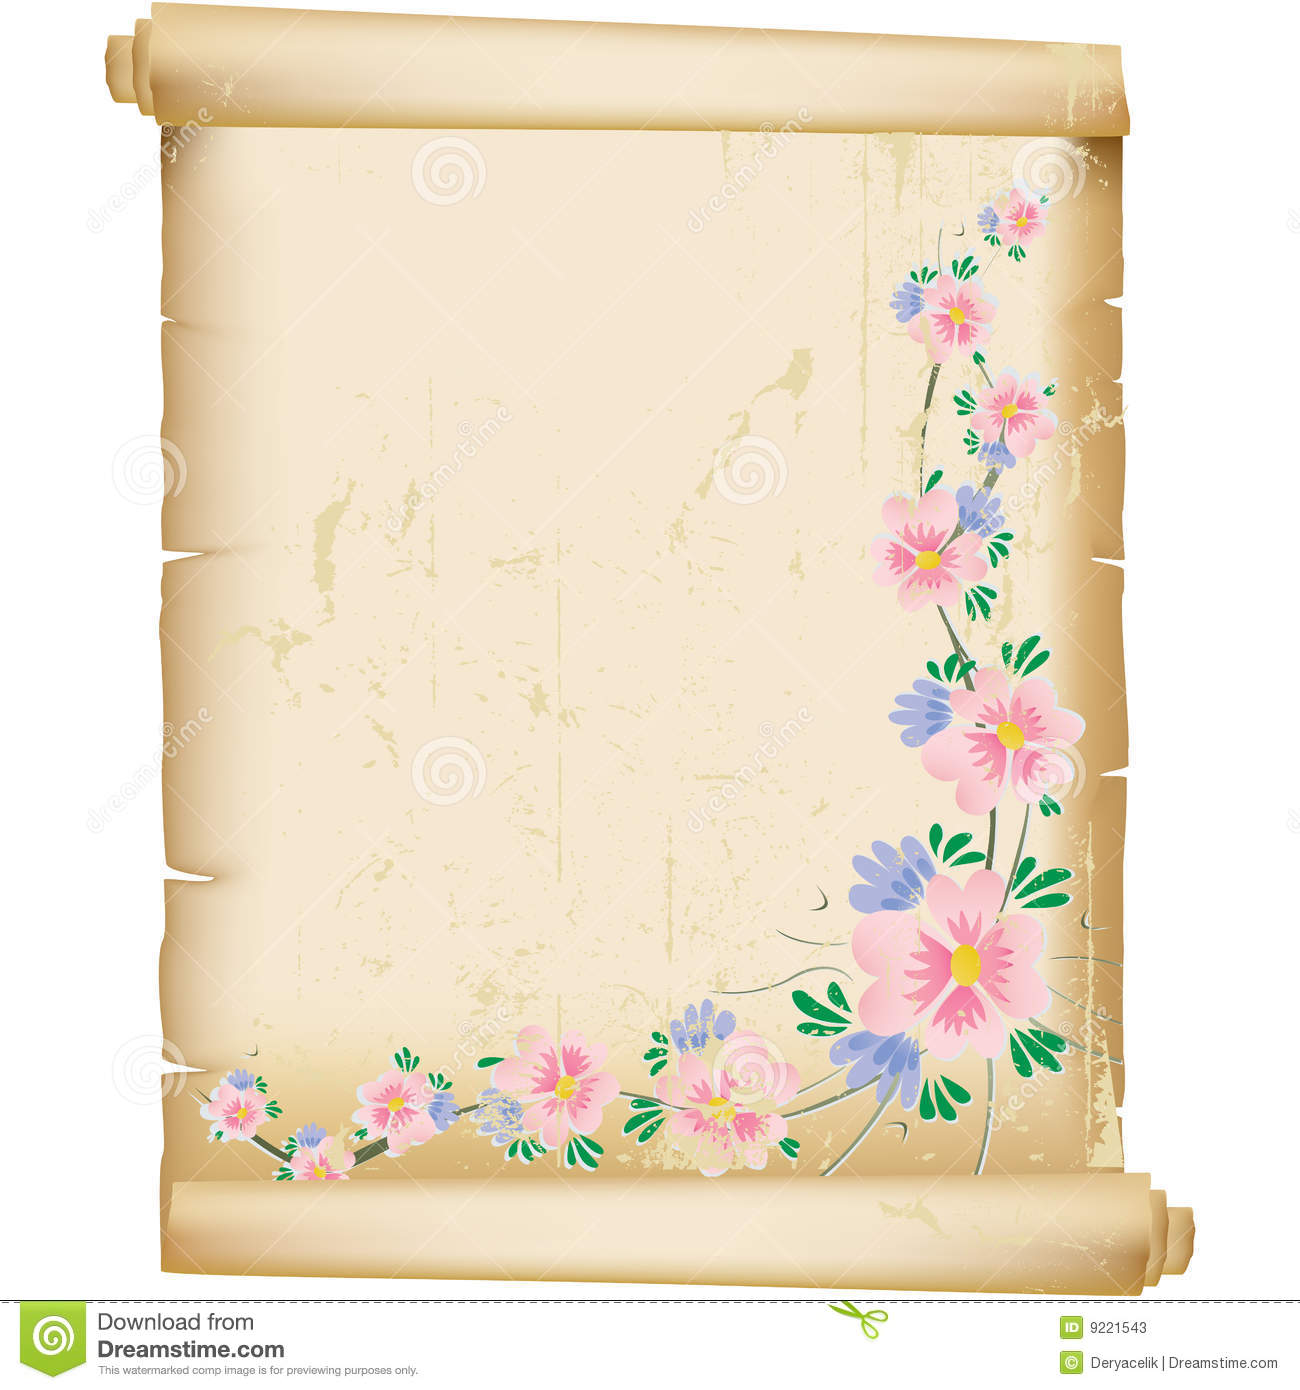 Grunge floral background on vintage manuscript pap